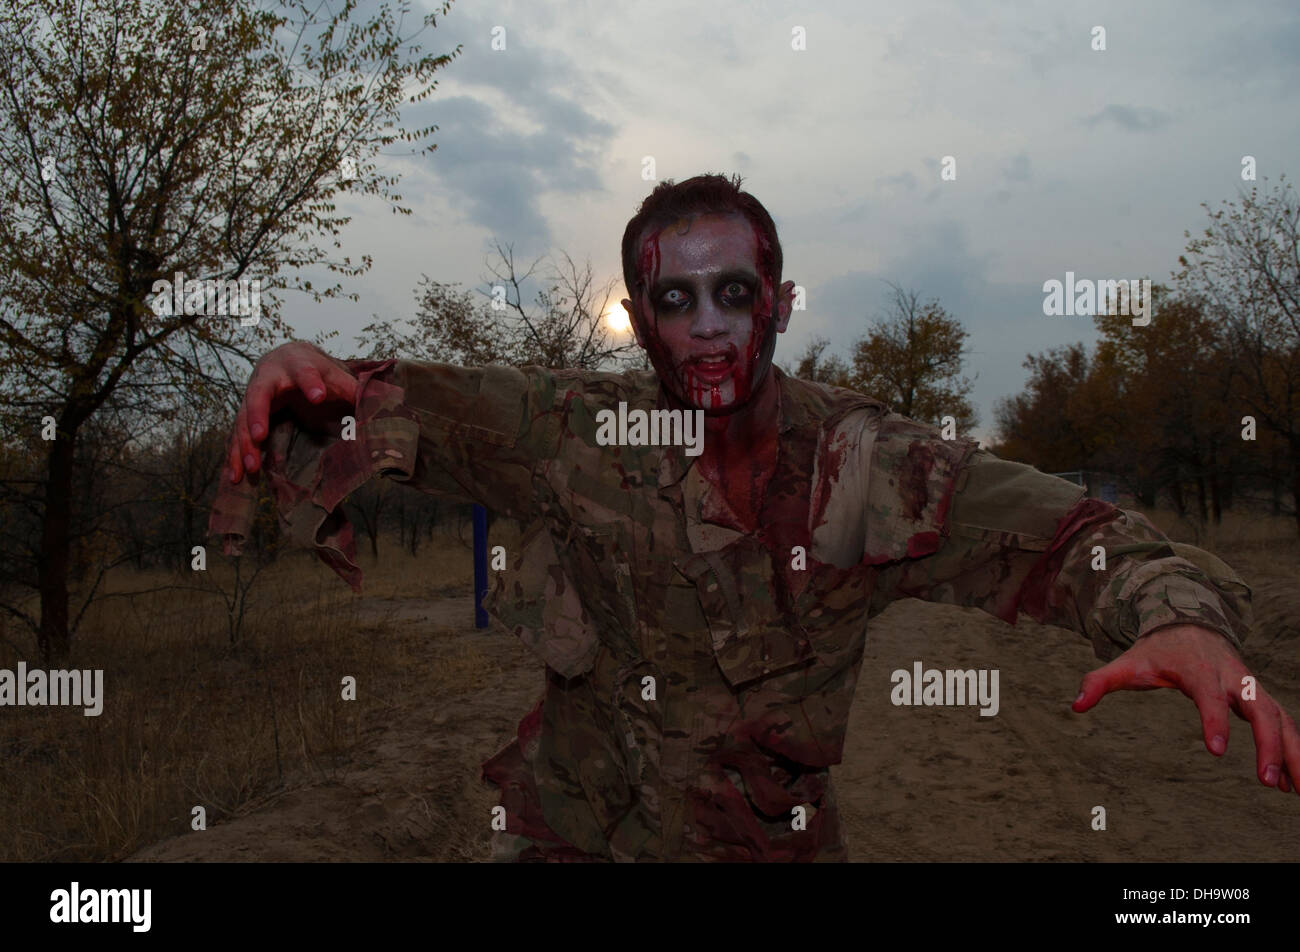 Capt. John Nussbaum demonstrates his zombie costume and acting skills during the 'zombie run' at Transit Center at Manas, Kyrgyzstan, Oct. 31, 2013. Nussbaum is a 376th Expeditionary Civil Engineer Squadron construction management officer deployed out of - Stock Image